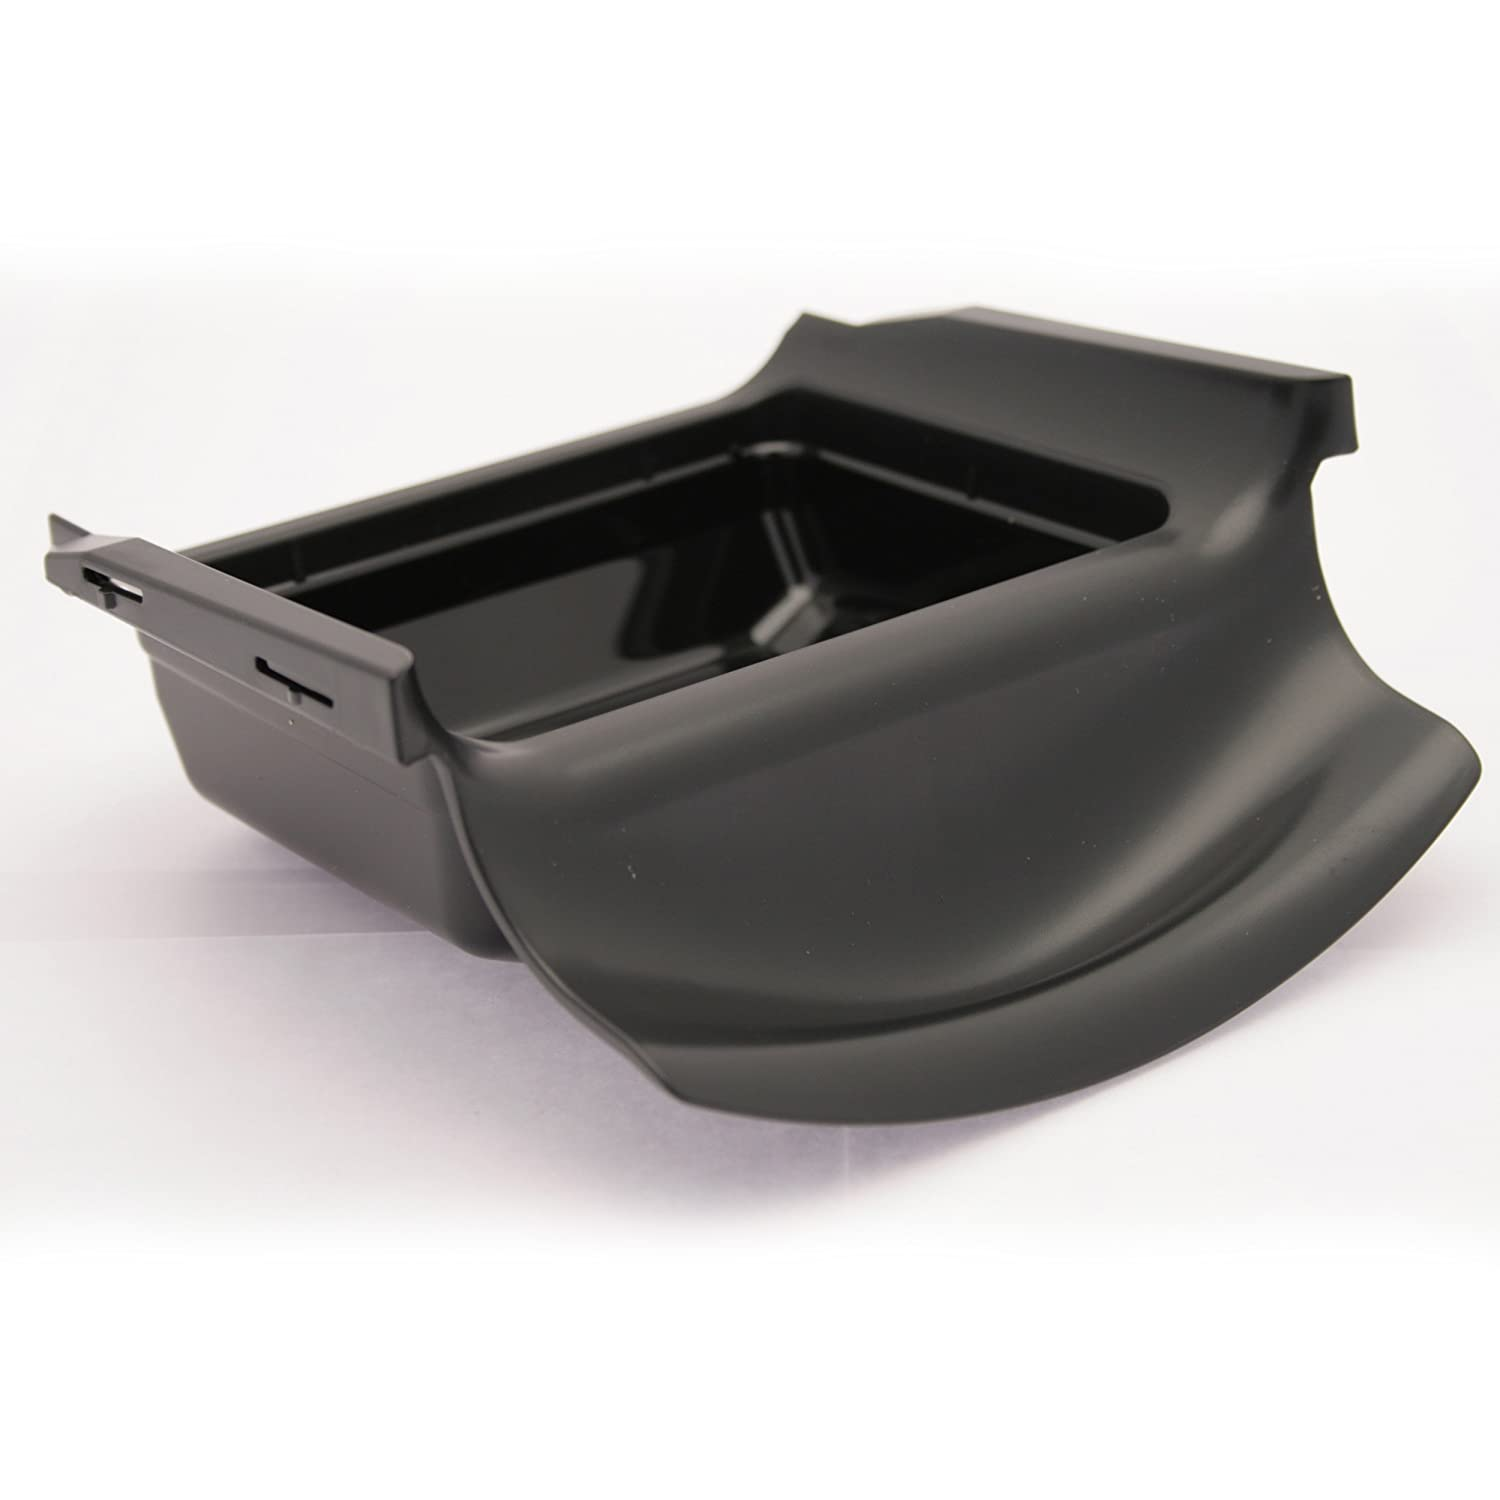 Krups Drip Tray without Grid MS-622573 for Dolce Gusto Circolo KP 5000, Charcoal Grey Krups GmbH